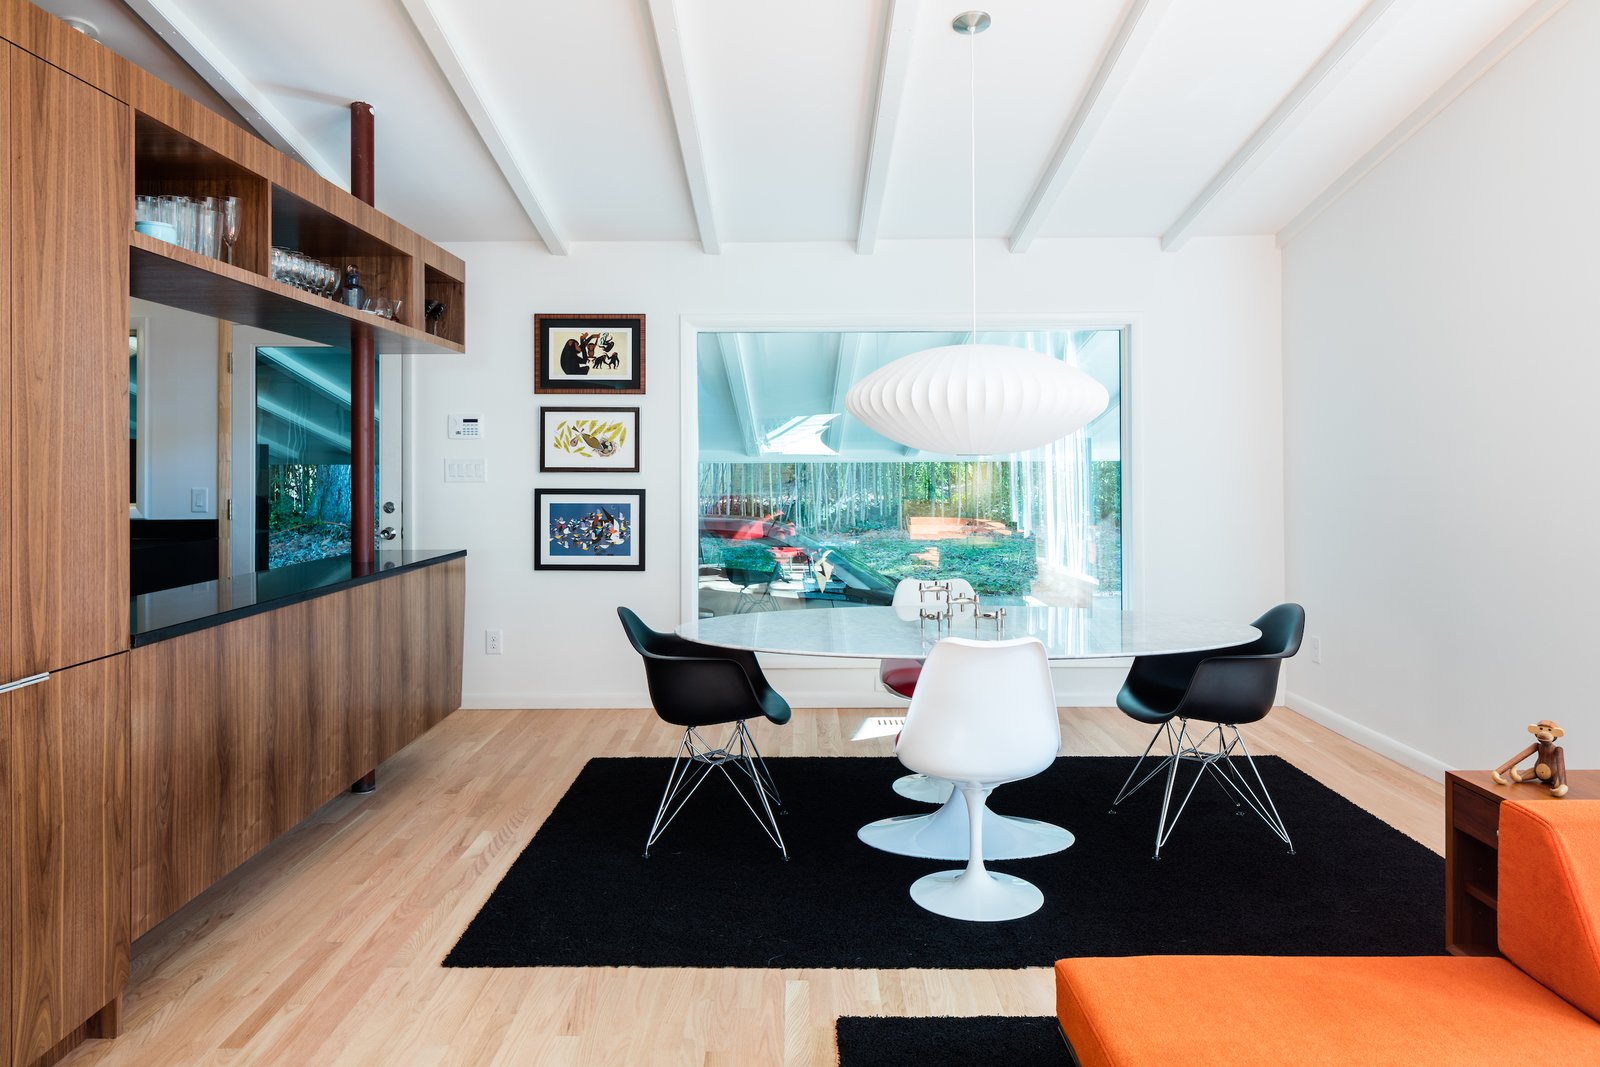 Dining Room, Pendant Lighting, Light Hardwood Floor, Chair, Table, Storage, and Shelves  Photo 8 of 14 in Elegantly Renovated, a Midcentury Home in Raleigh Asks $975K